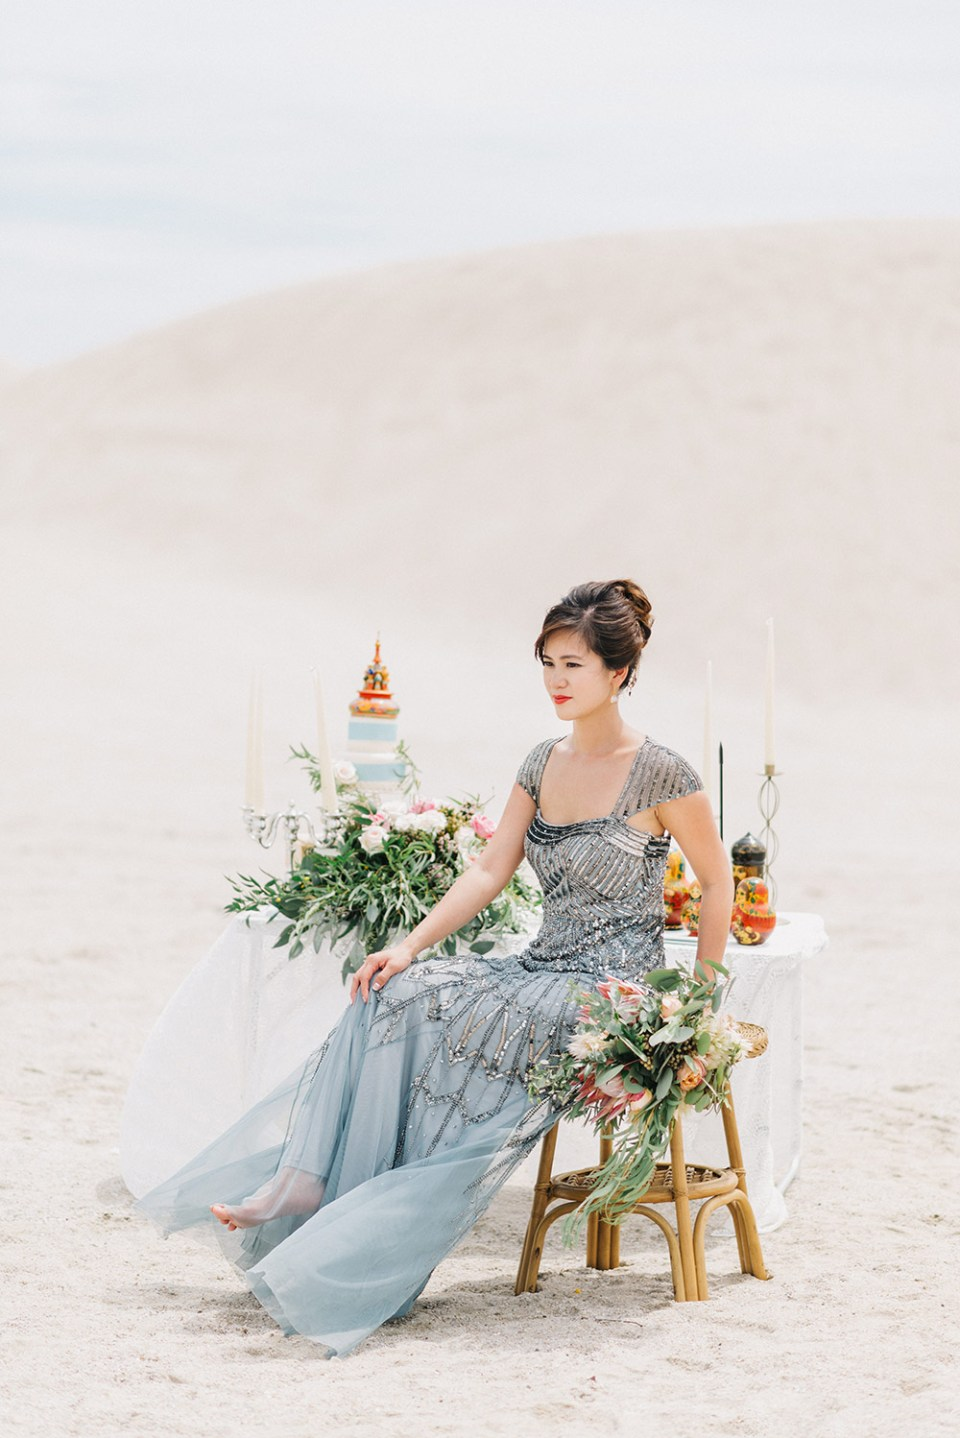 Dress by Adrianna Papell from Rent A Dress. Peter Herman Photography. www.theweddingnotebook.com